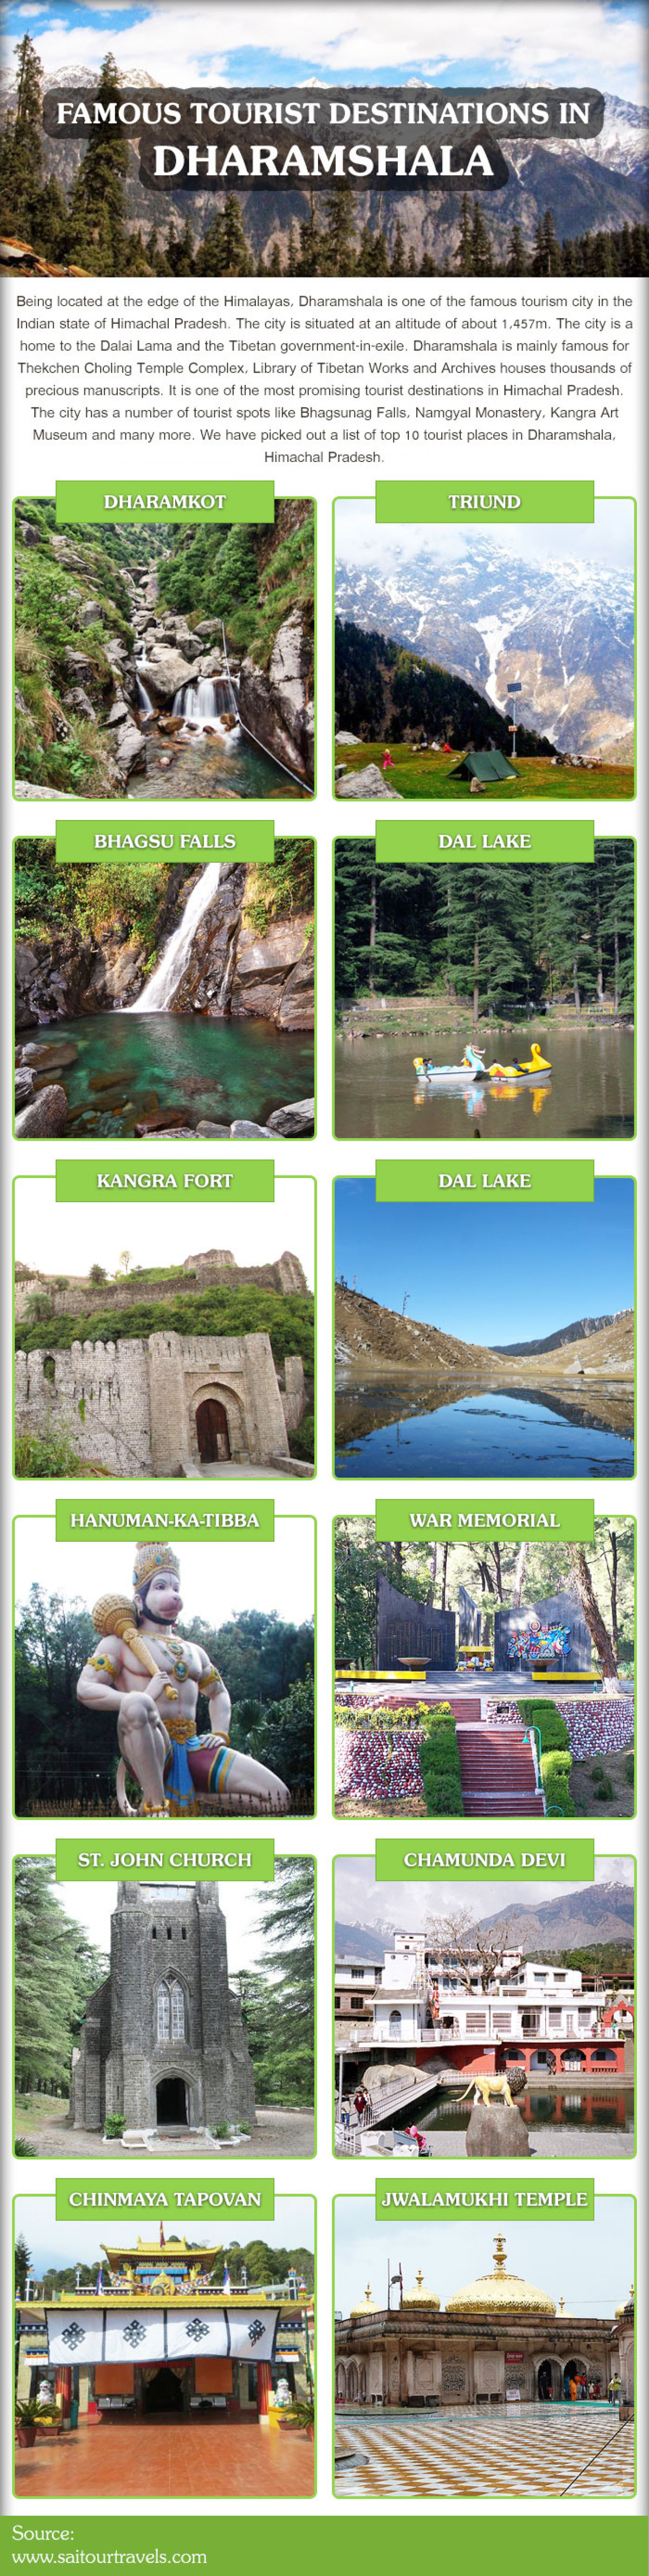 Top 12 Tourist Attractions in Dharamshala Infographic